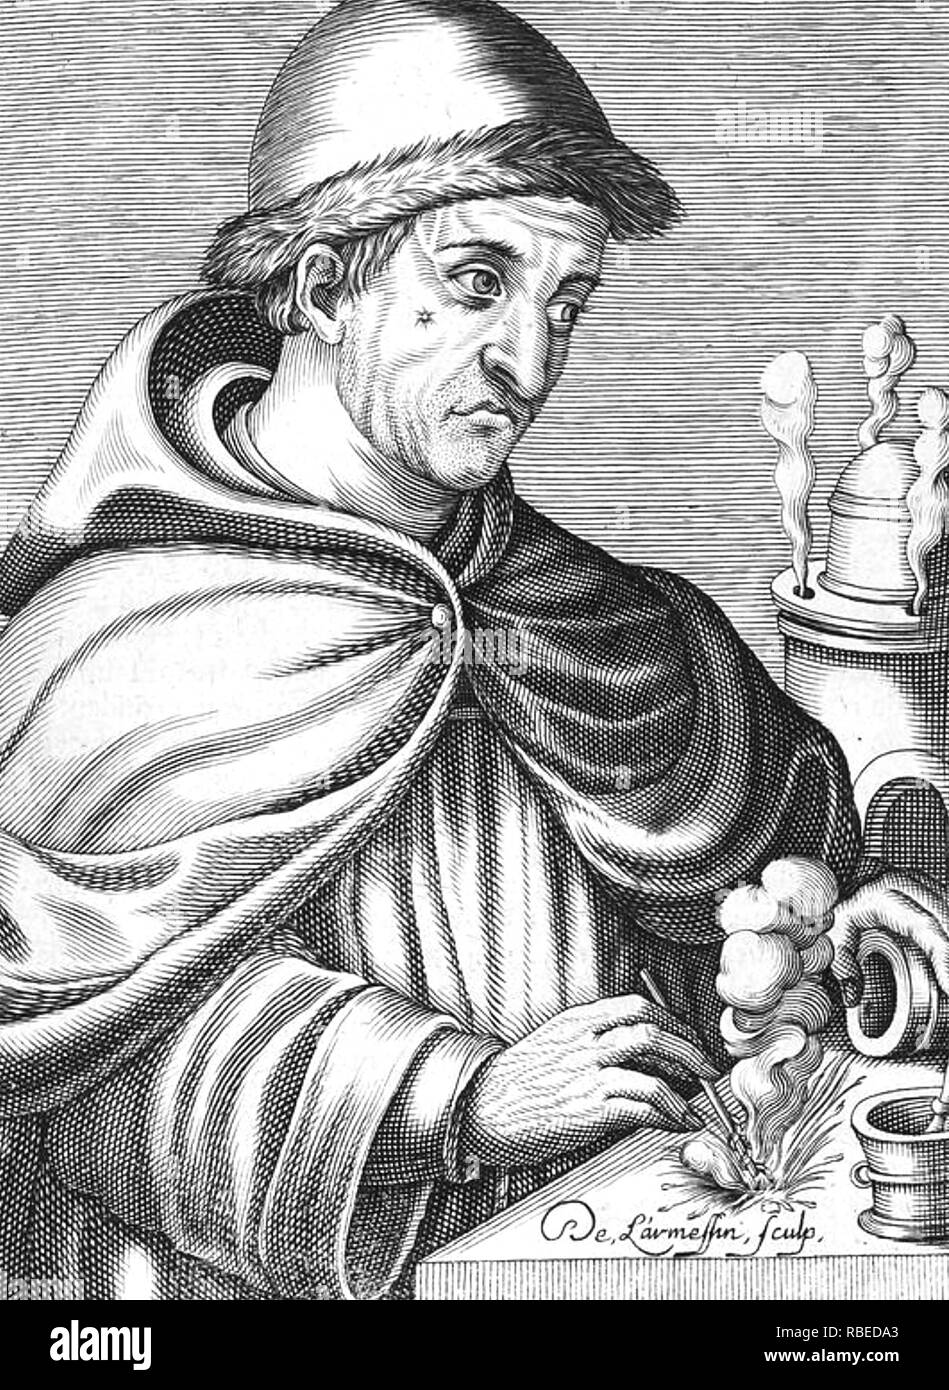 BERTHOLD SCHWARZ Legendary German/Danish/Greek alchemist of the late 14th century, credited with the invention of gunpowder by 15th century sources. - Stock Image